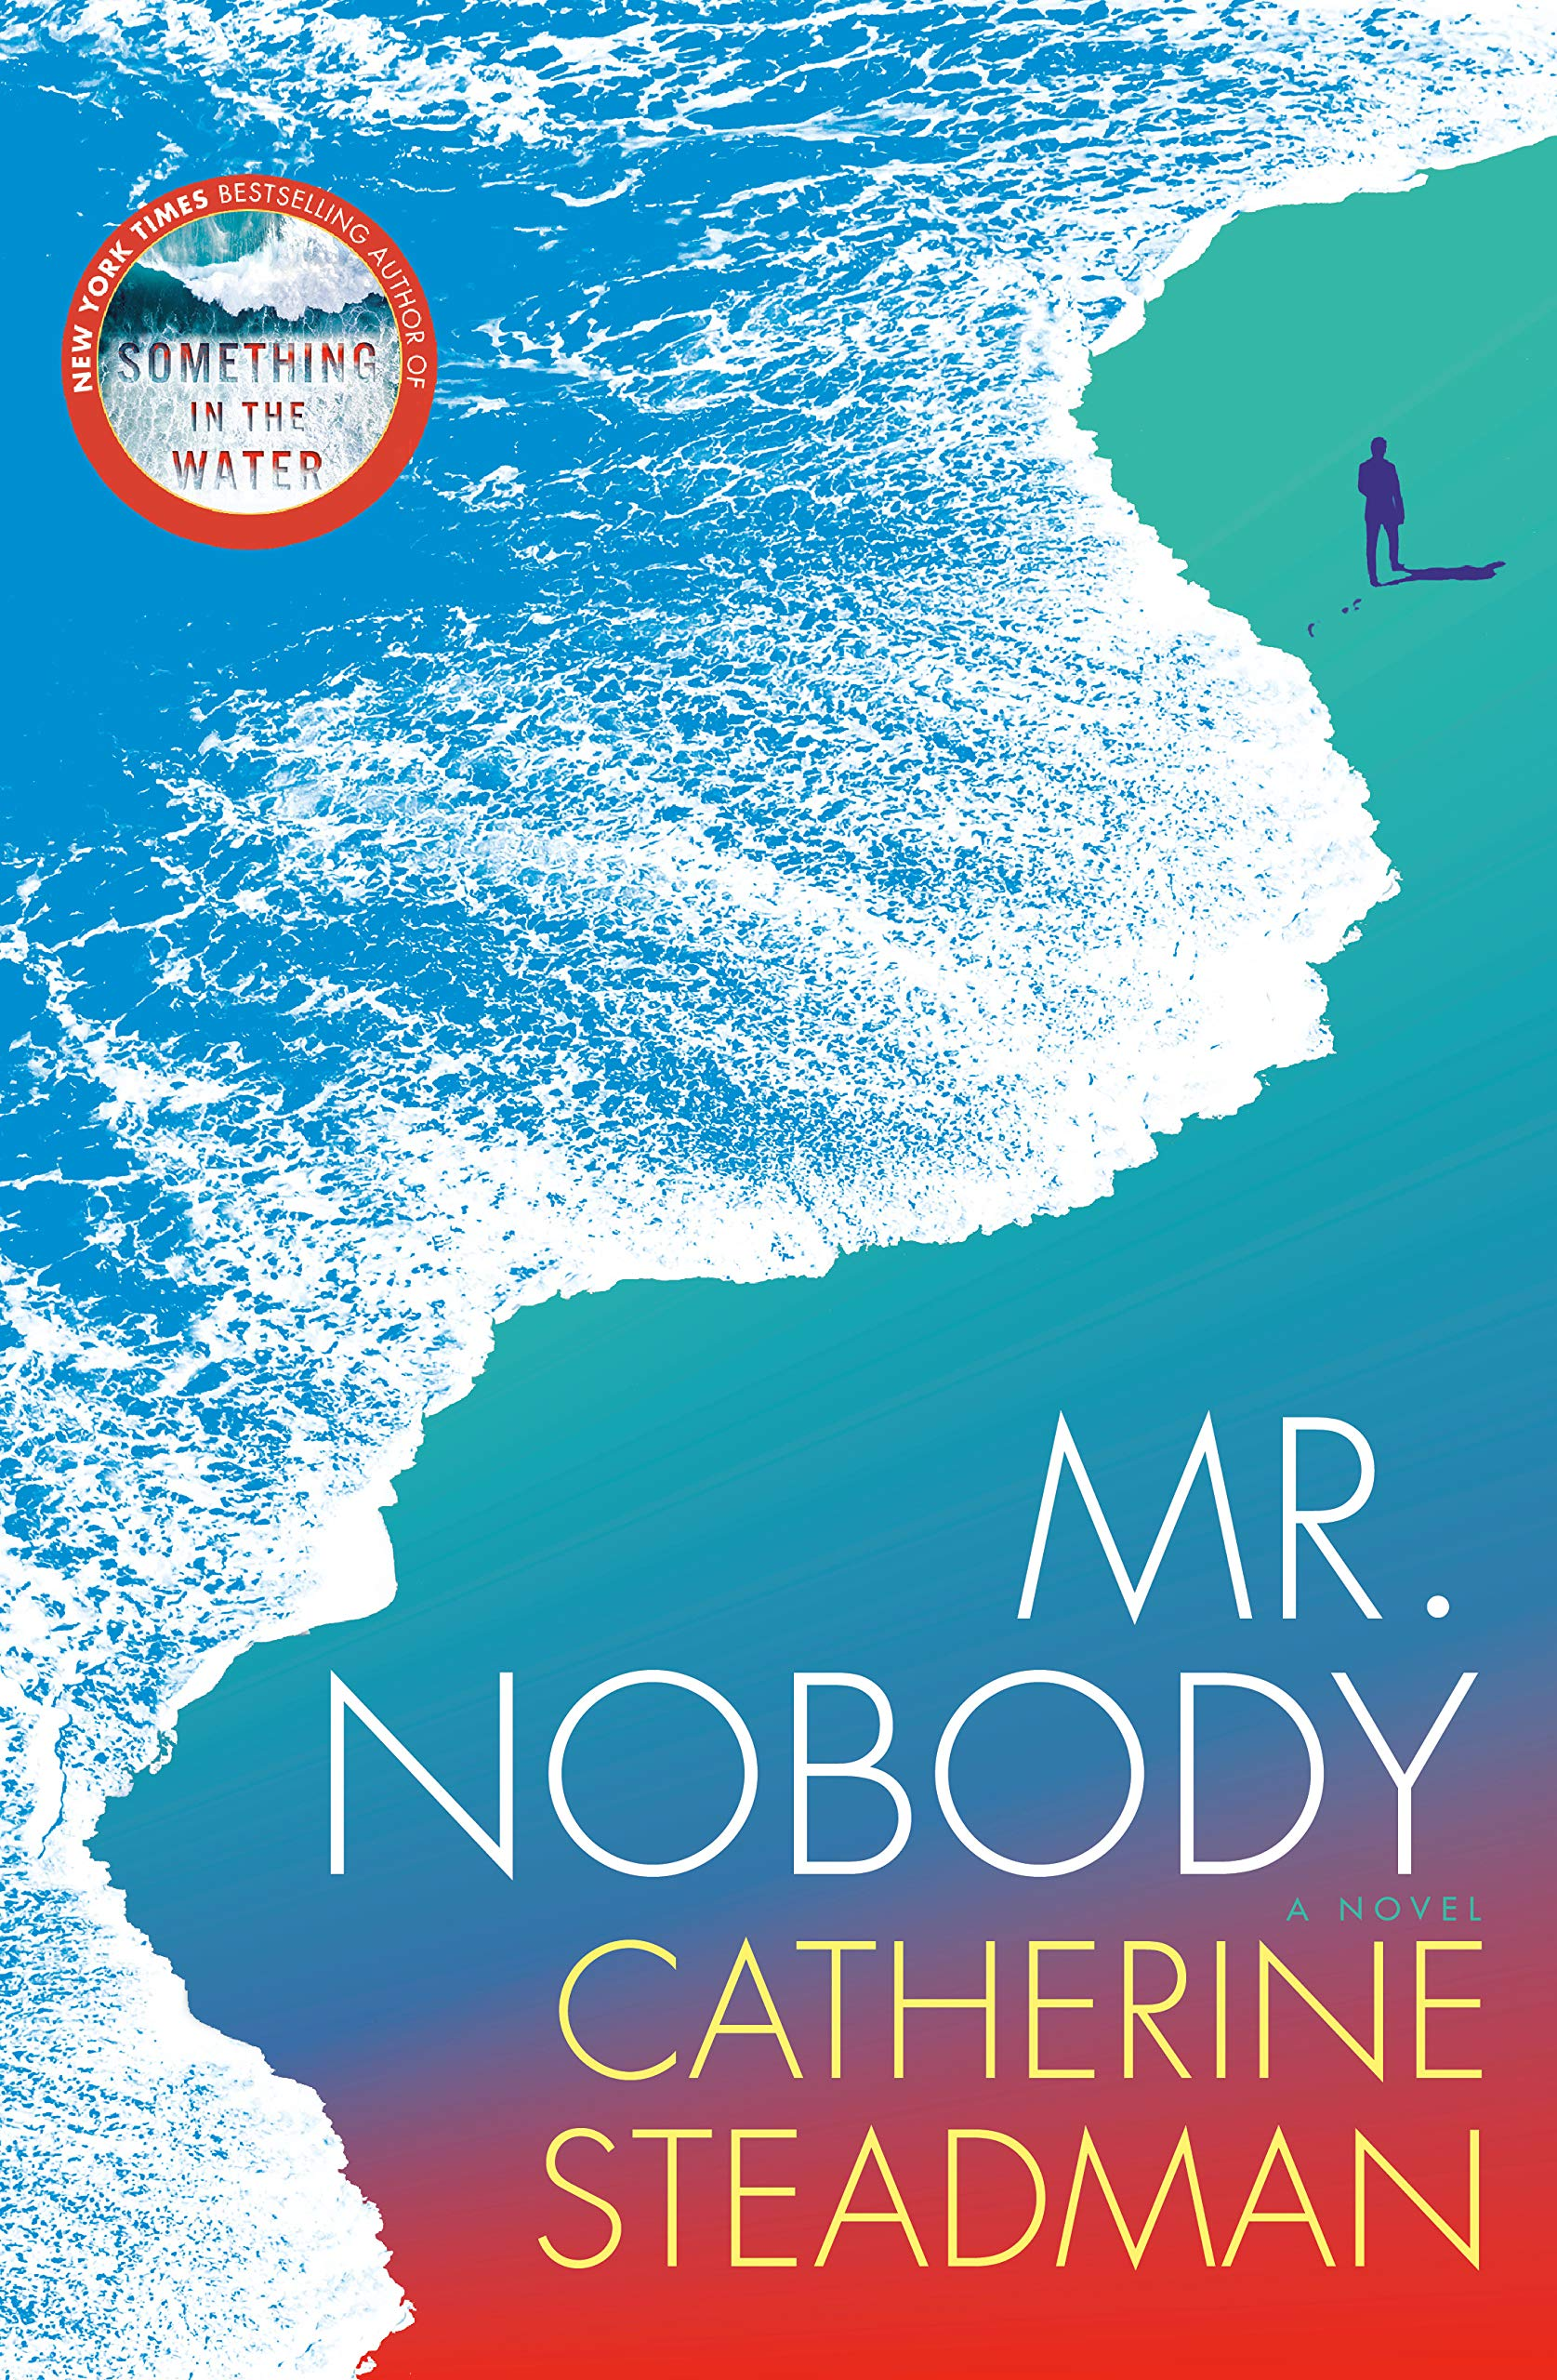 Mr Nobody 2020 book releases